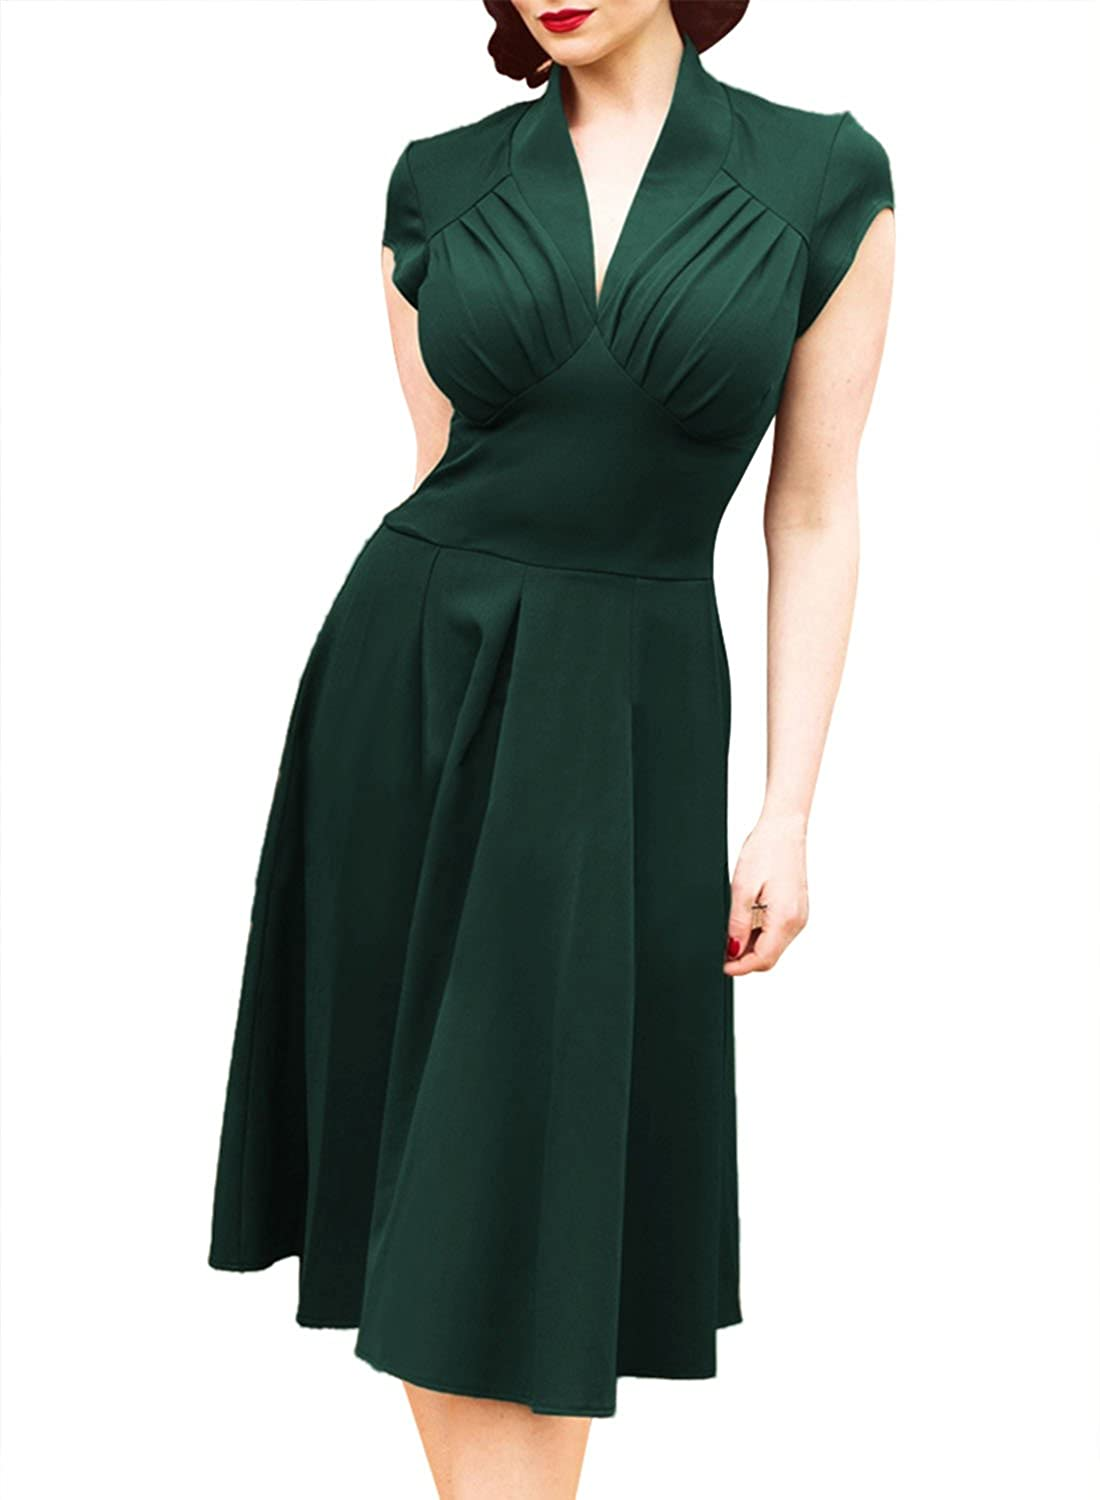 50s Costumes | 50s Halloween Costumes Sweetmeet Womens 1940s Vintage Rockabilly Ball Gown Flared Dress Swing Skaters £25.99 AT vintagedancer.com